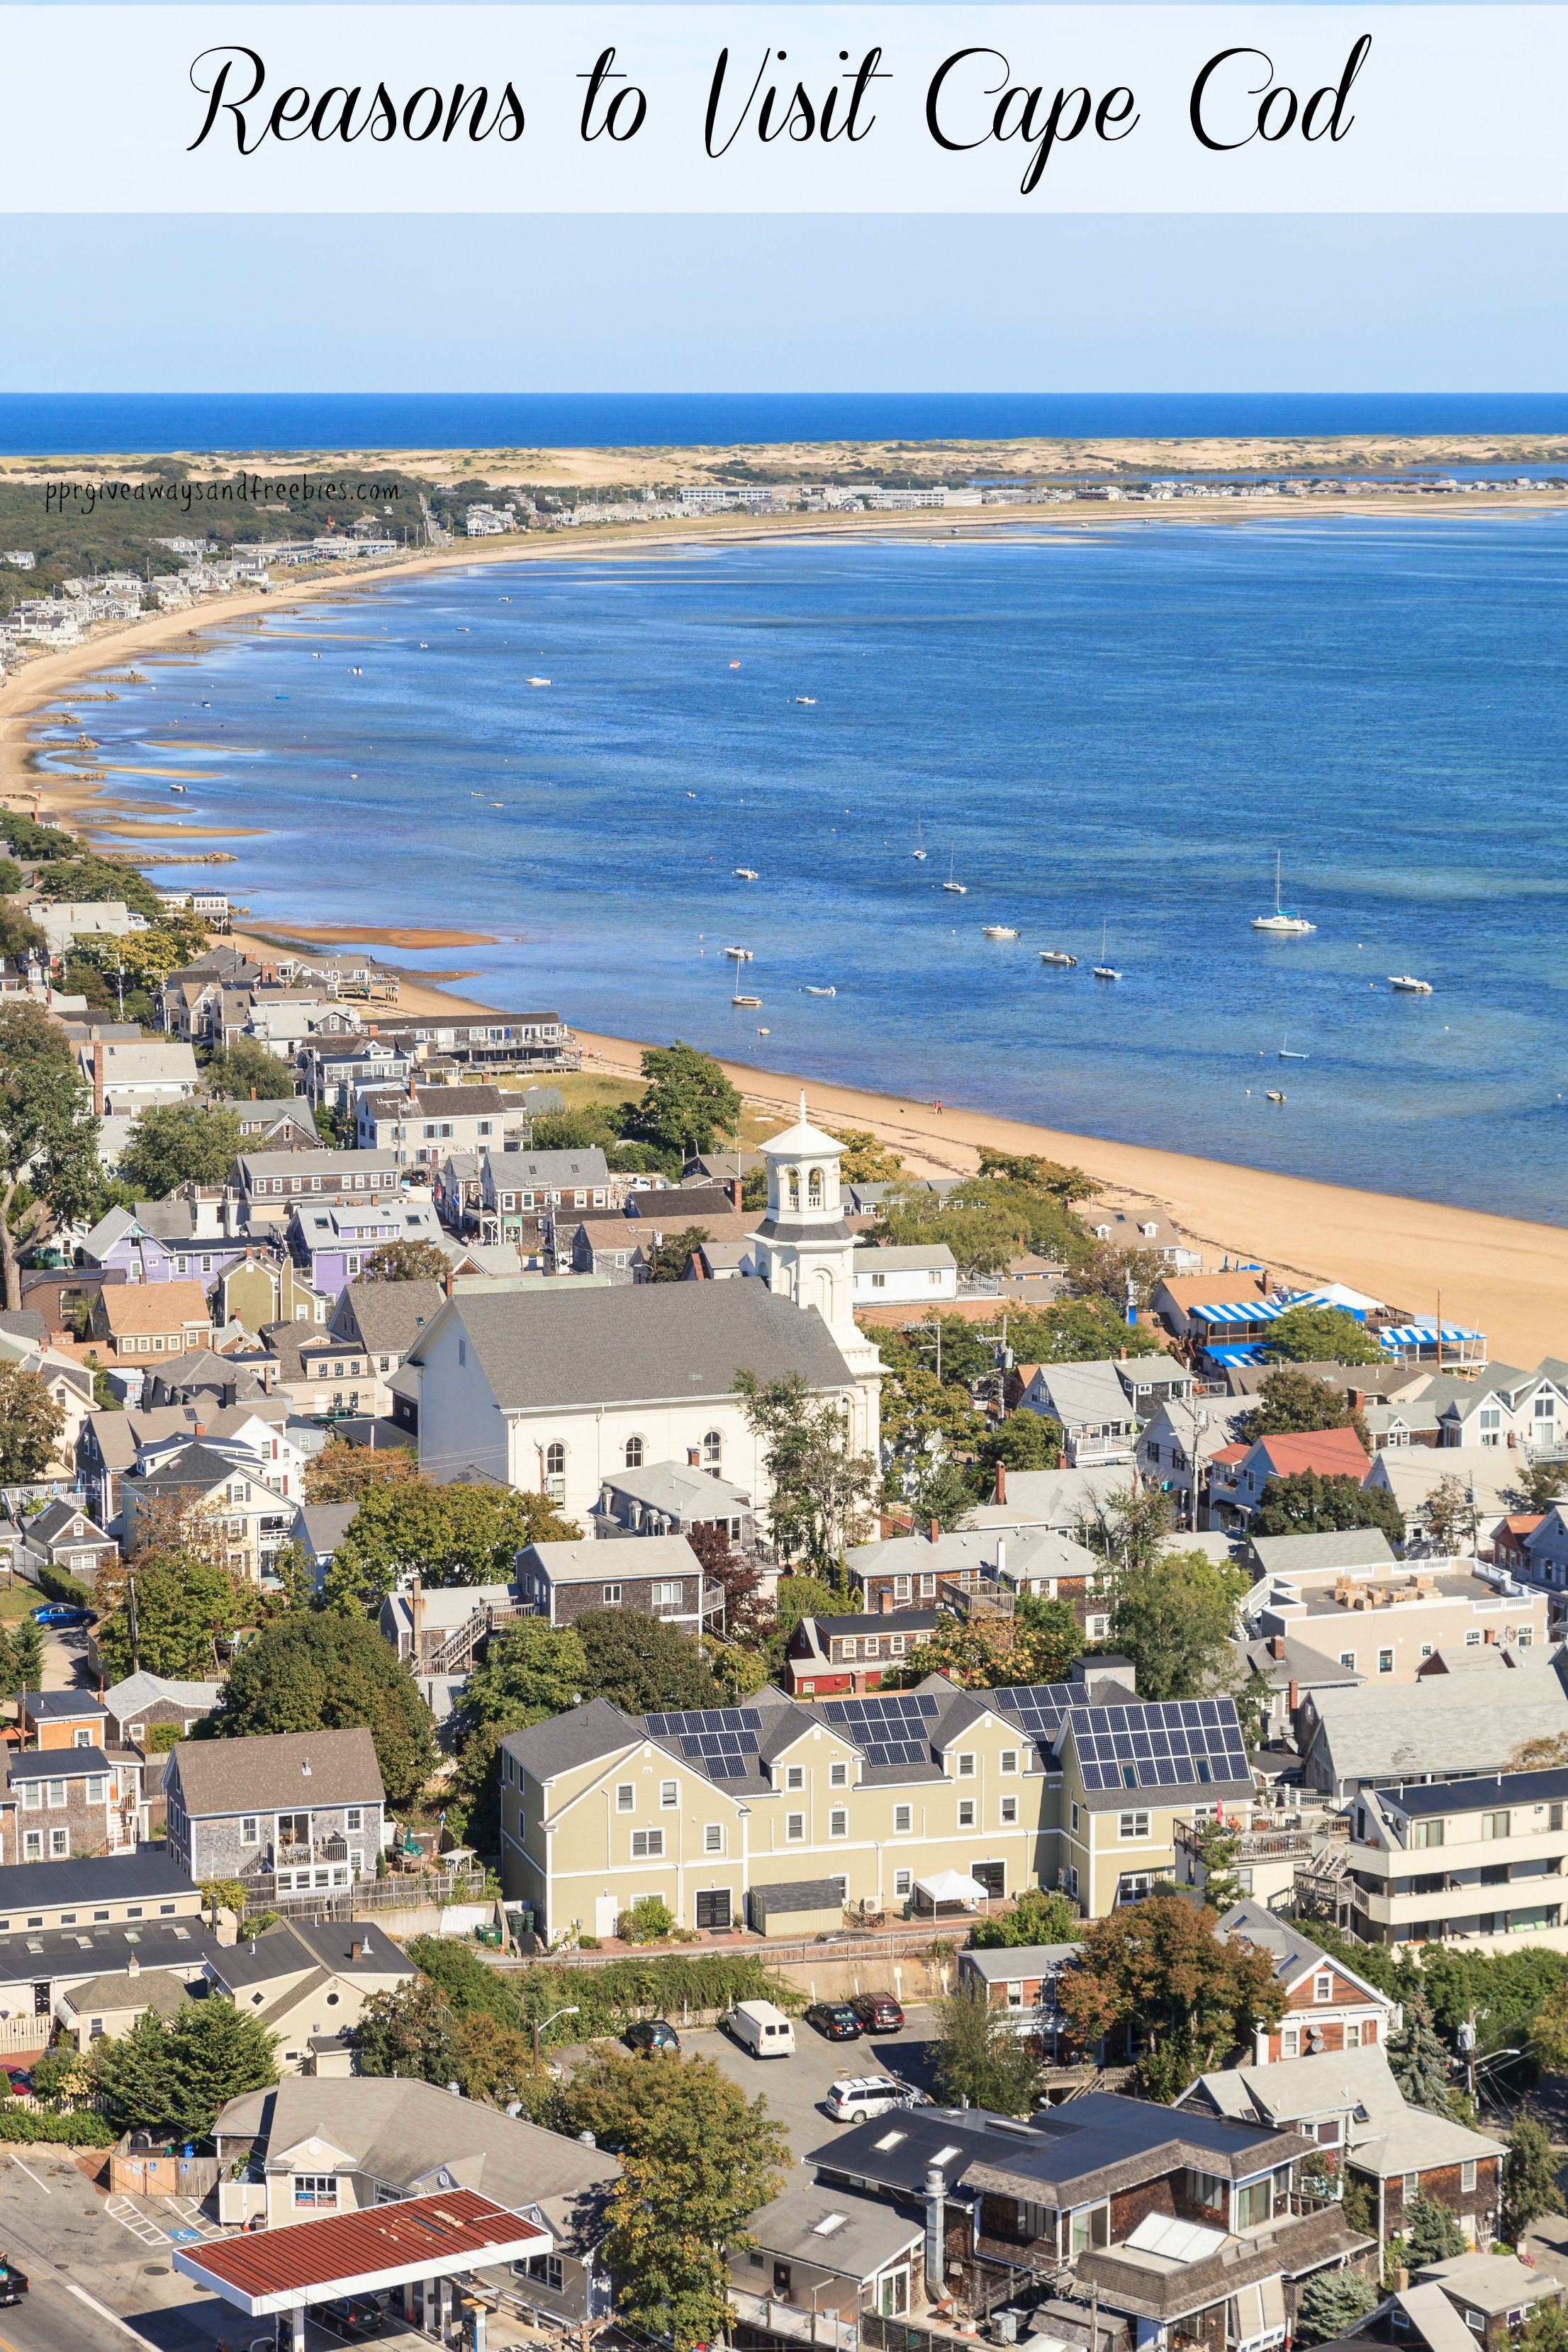 Reasons To Visit Cape Cod Cape Cod Vacation Cape Cod Travel Family Friendly Vacation Spots